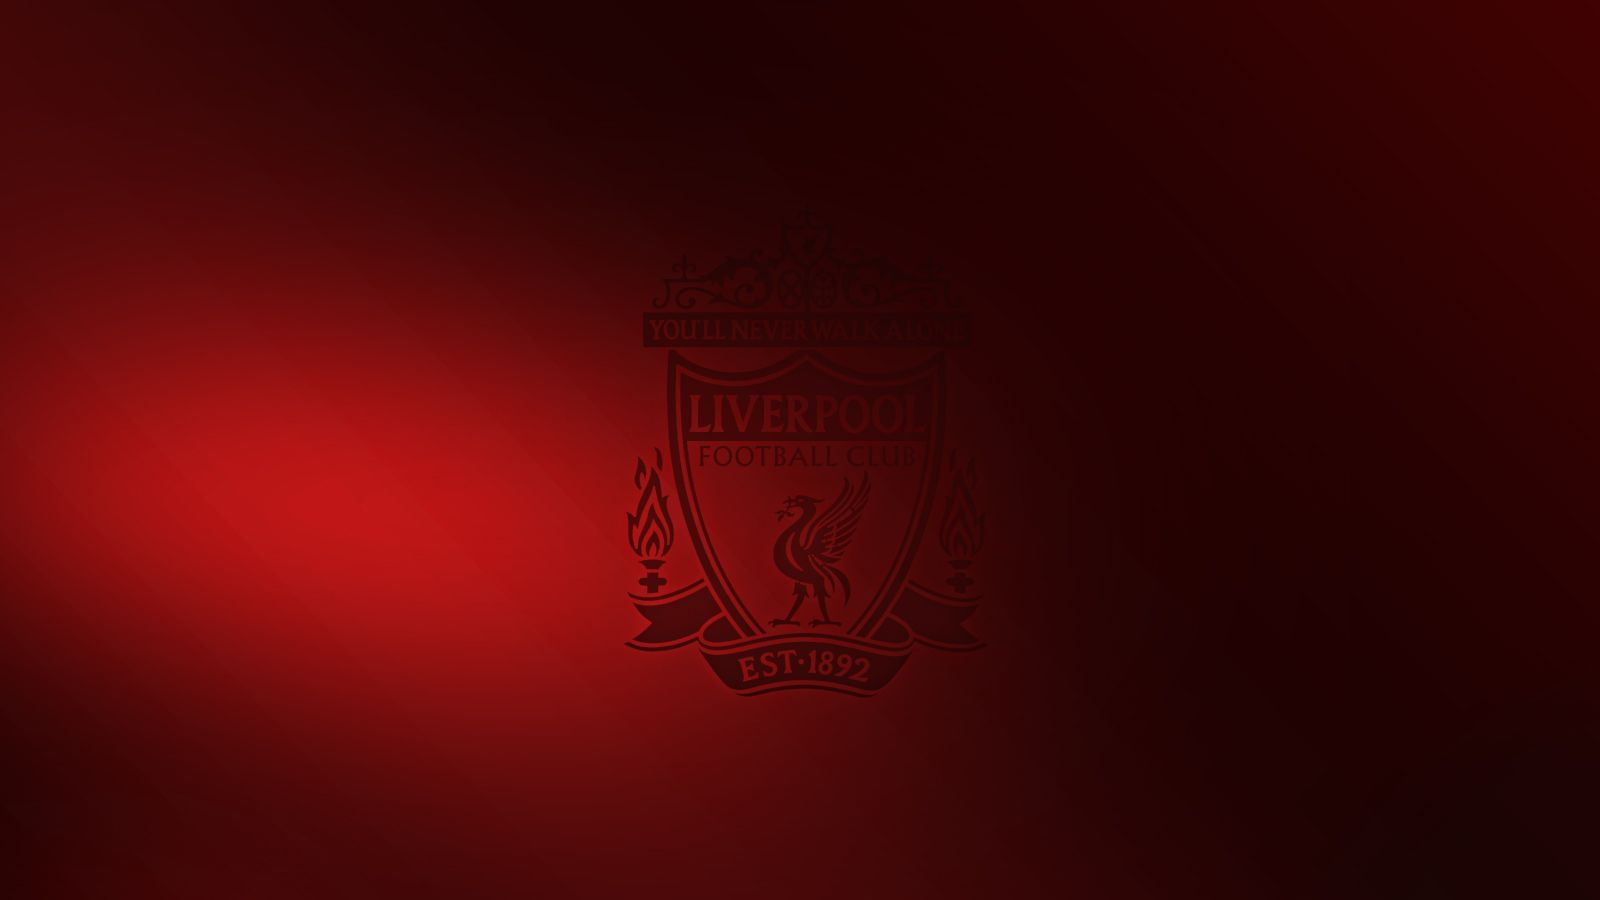 full hd p liverpool wallpapers hd desktop backgrounds | wallpapers